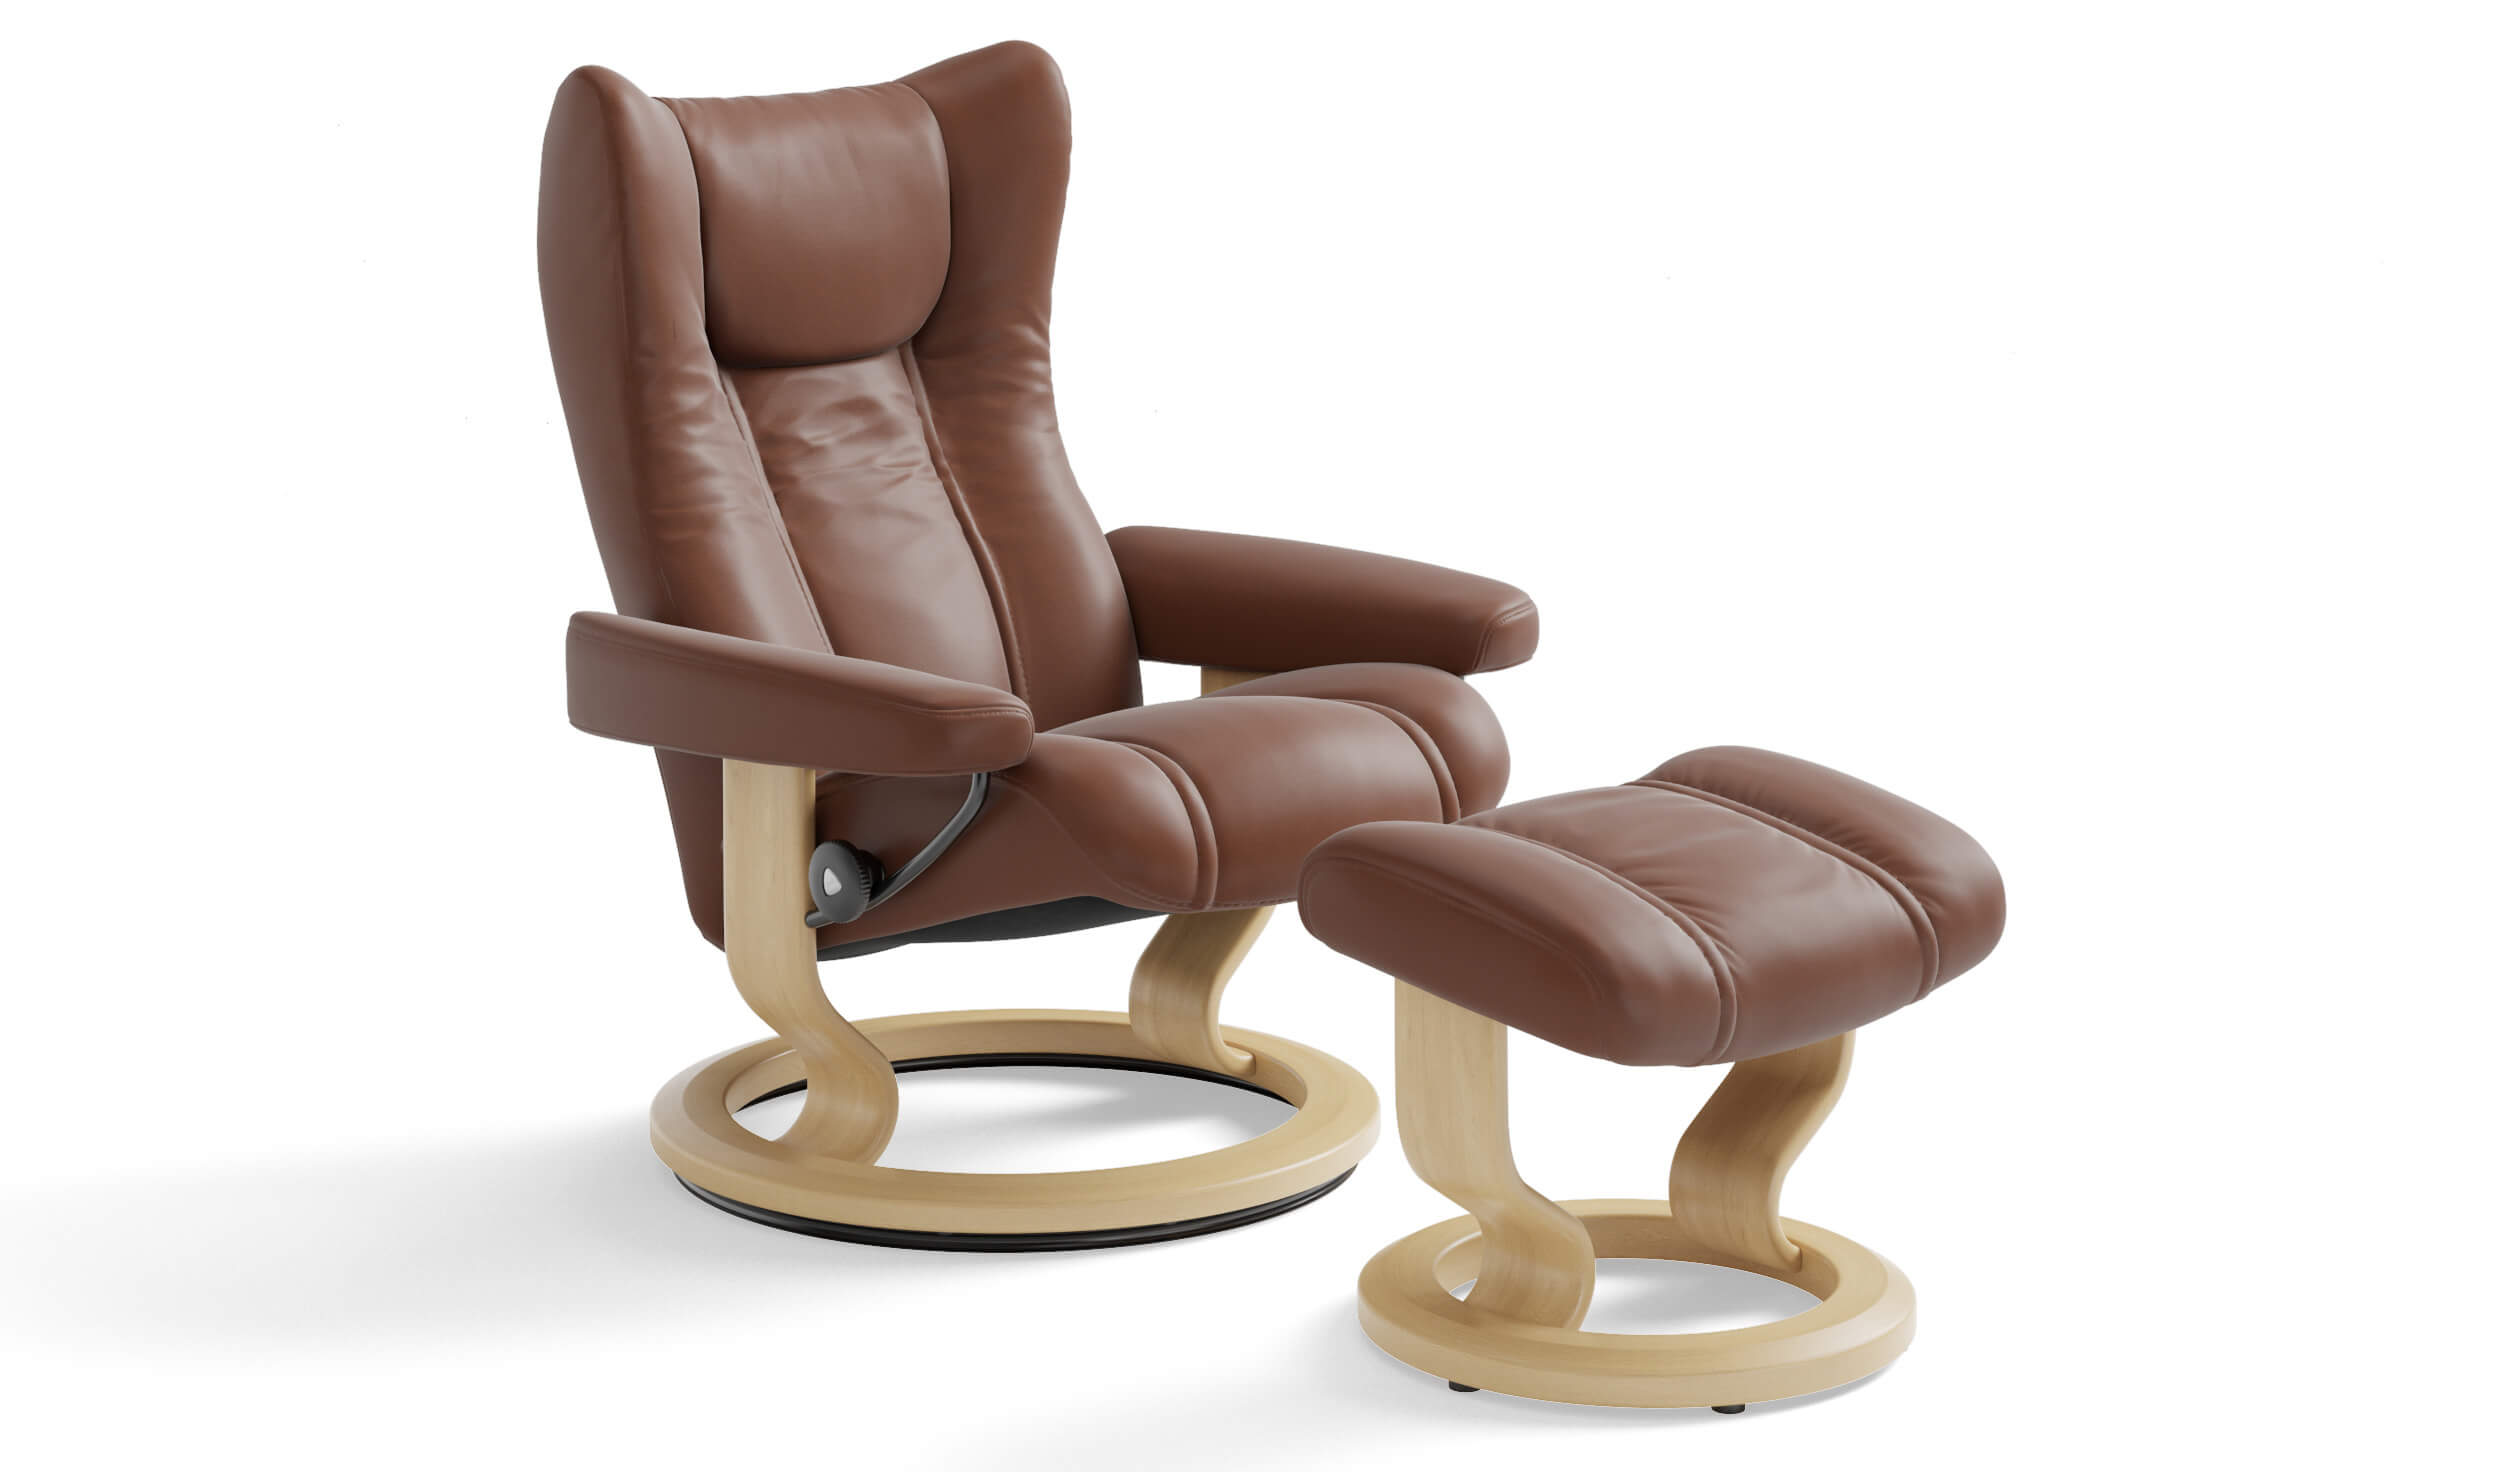 Stressless Wing Promotion Hansen Interiors - Stressless Wing Classic Legcomfort